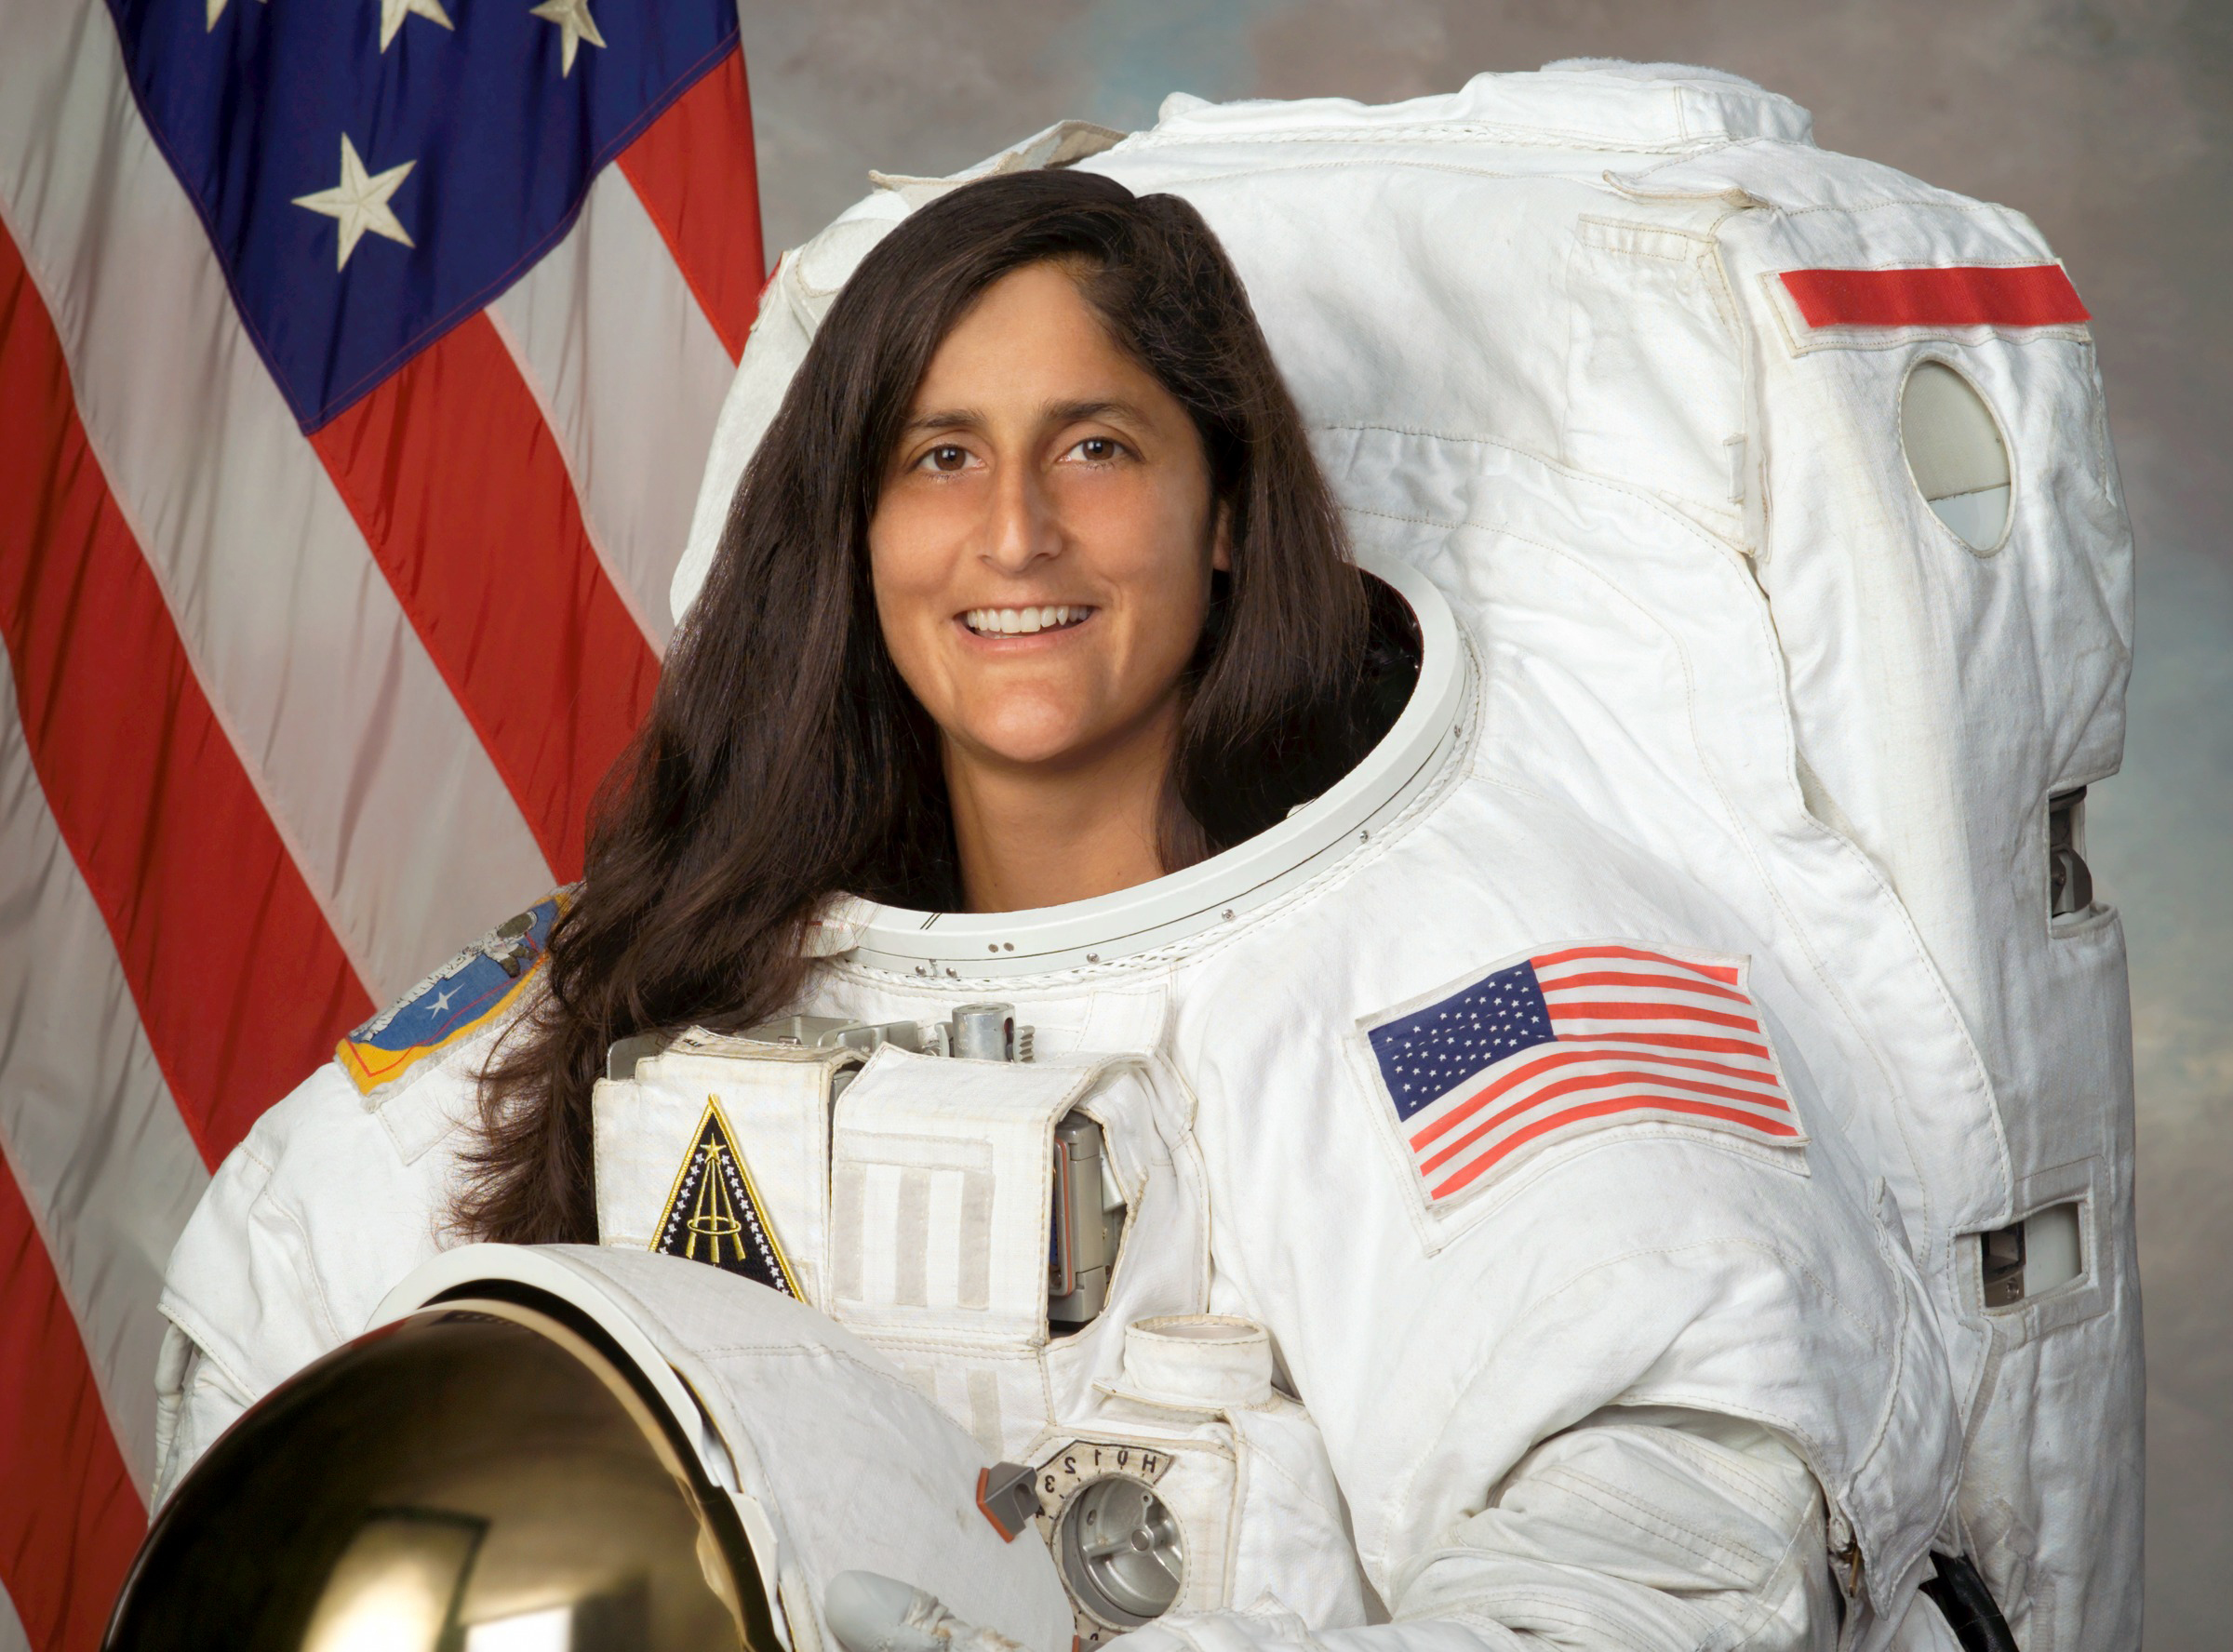 In this Sept. 22, 2004 photo provided by NASA, astronaut Sunita Williams poses for a photo. Williams is one of four veteran astronauts selected to fly the first commercial space missions, NASA announced, Thursday, July 9, 2015. (NASA via AP)